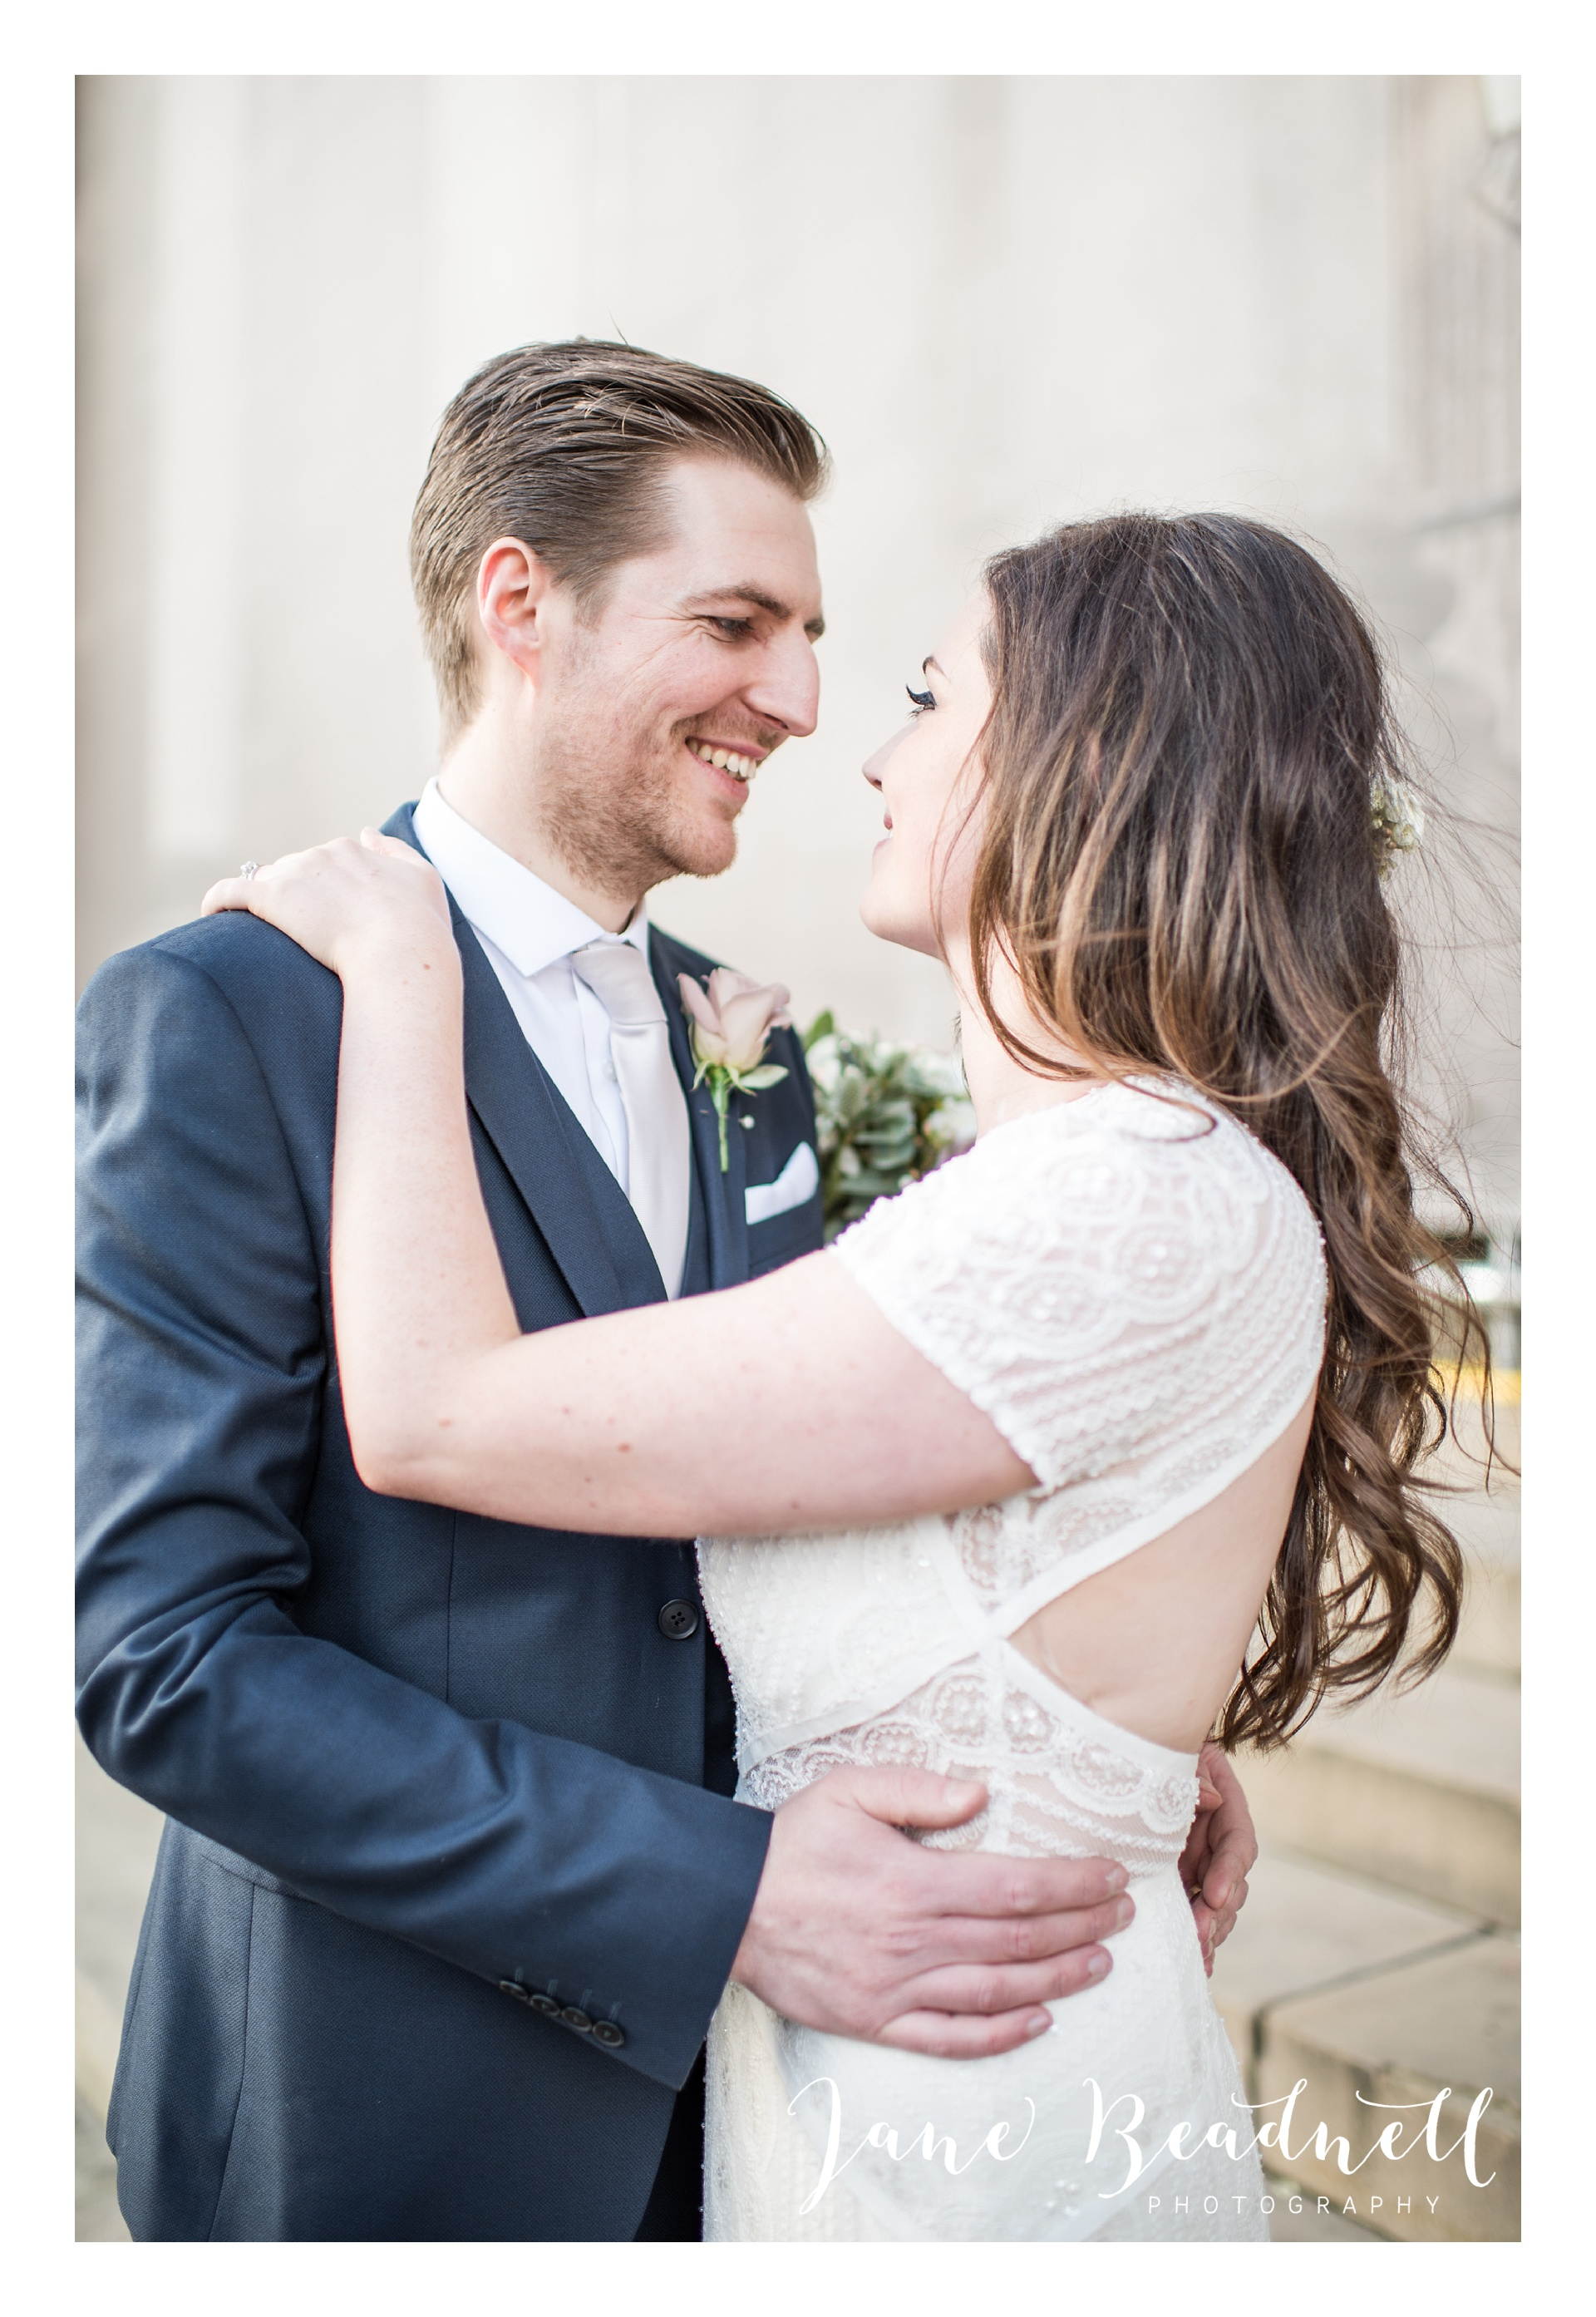 Wedding photography Cross Keys Leeds Wedding Jane Beadnell Photography_0080